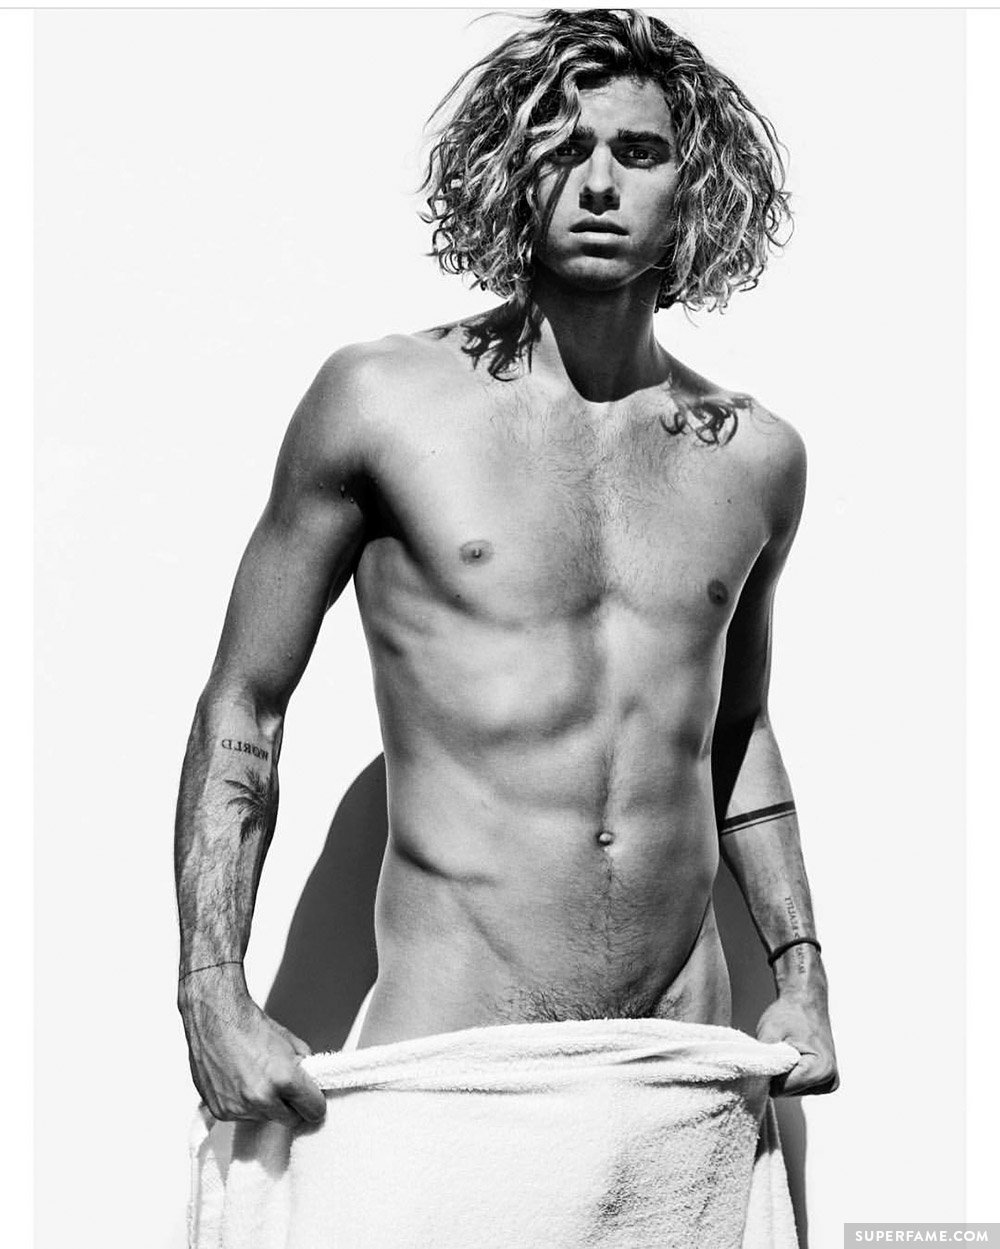 Jay Alvarrez being hot.